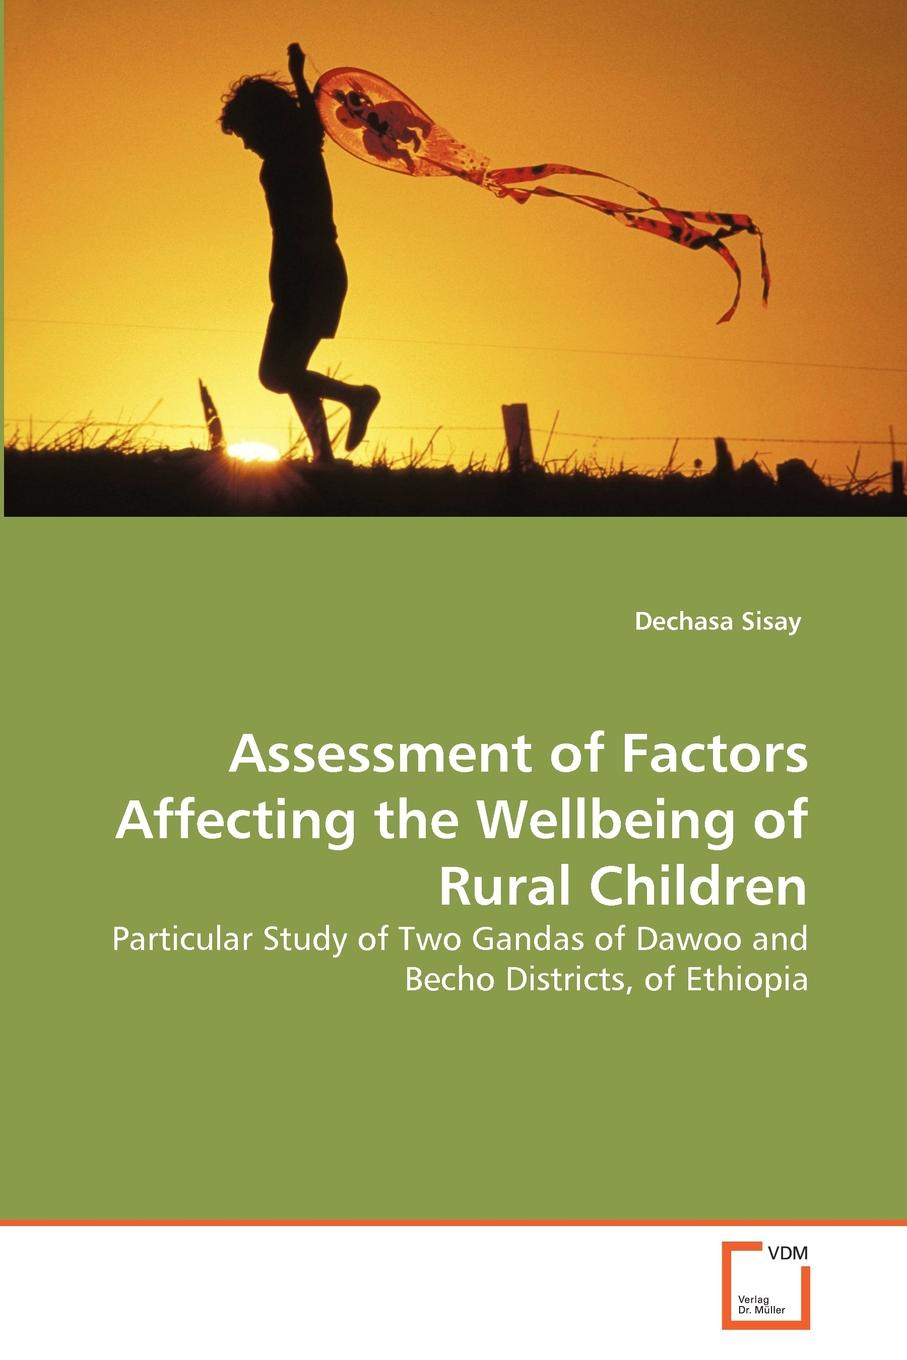 Dechasa Sisay Assessment of Factors Affecting the Wellbeing Rural Children